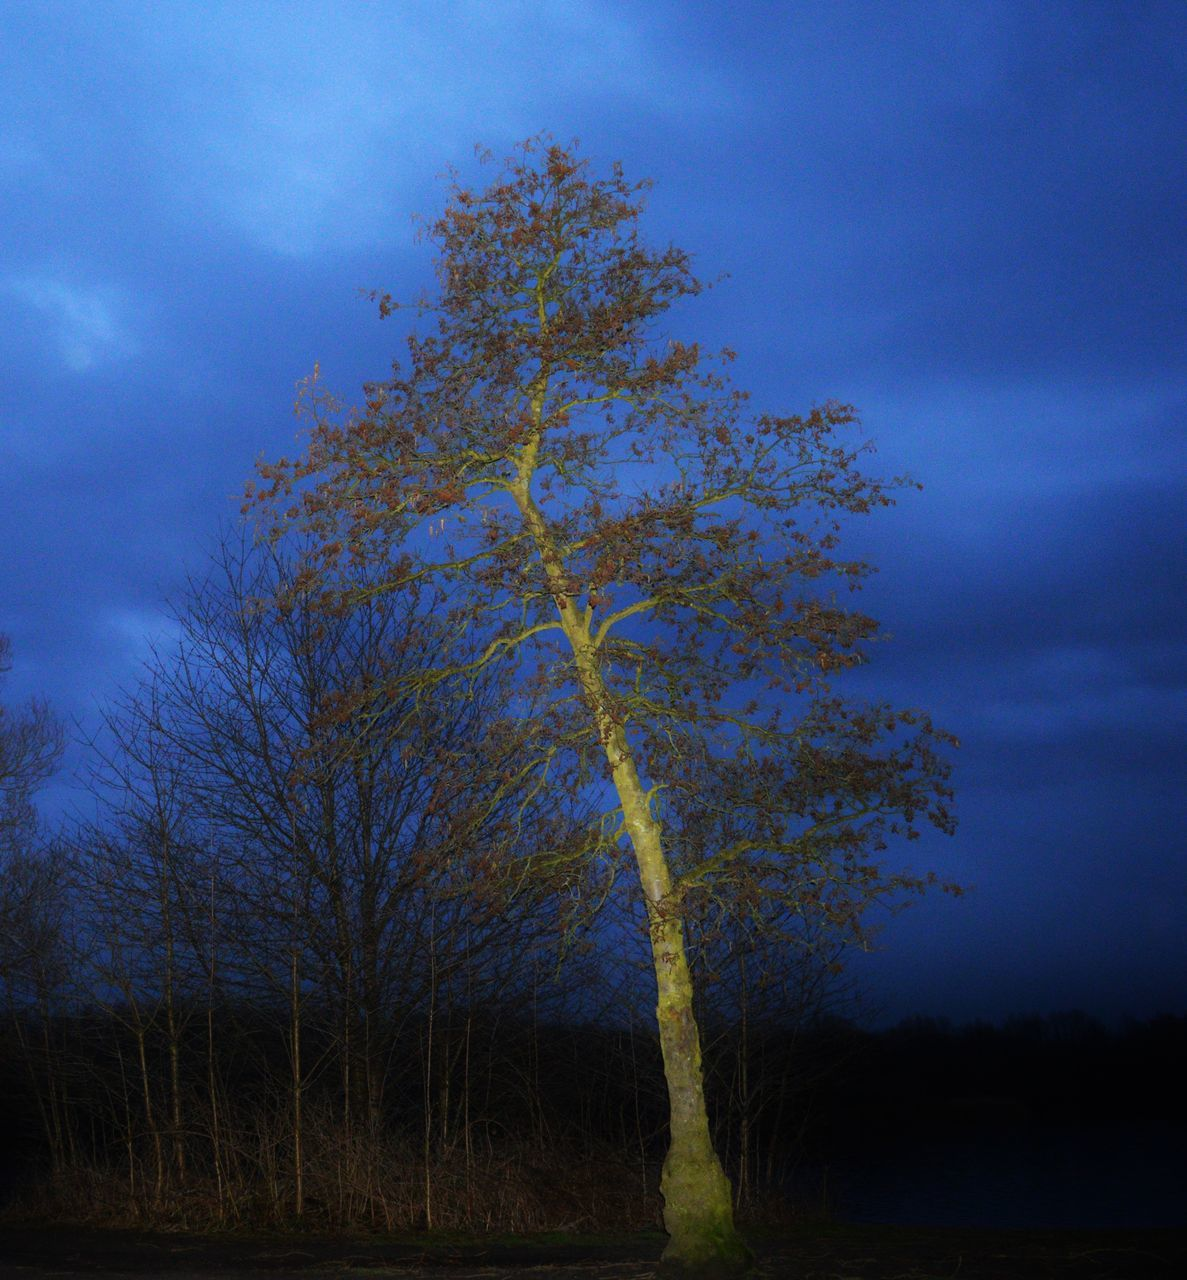 tree, tranquility, sky, nature, tranquil scene, landscape, outdoors, blue, scenics, bare tree, beauty in nature, no people, lone, branch, tree trunk, growth, forest, night